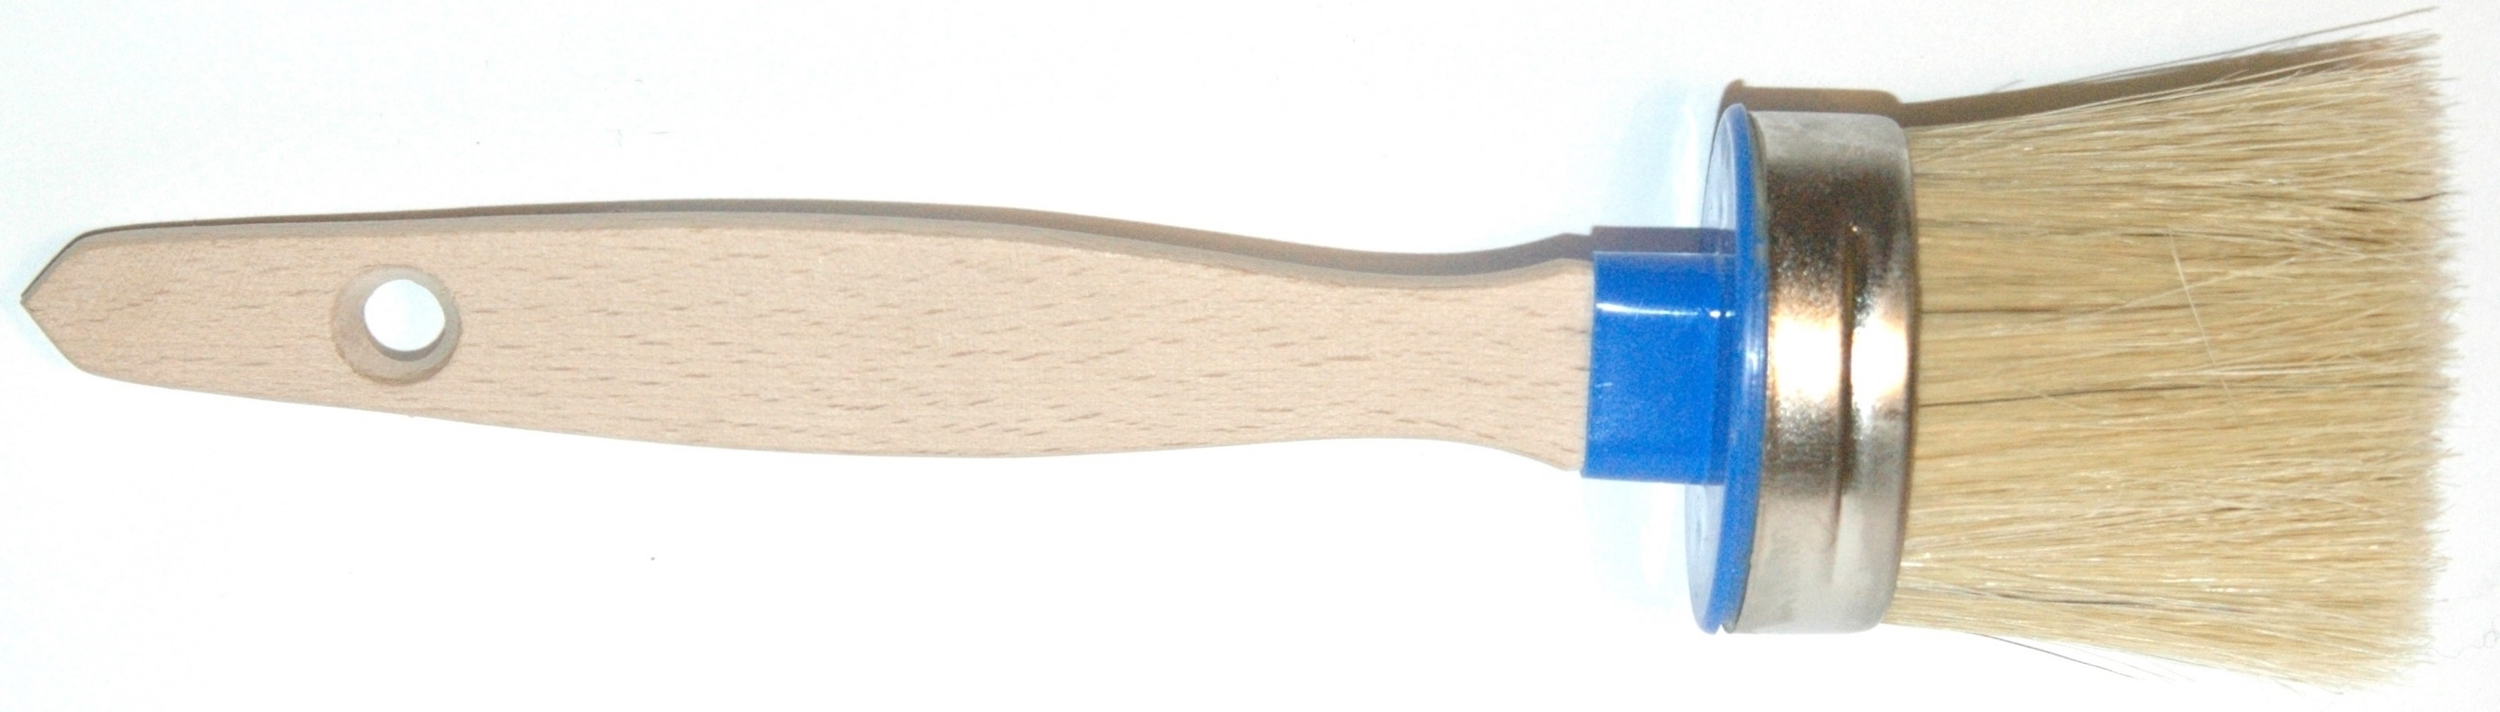 Blue Brush upright.jpg